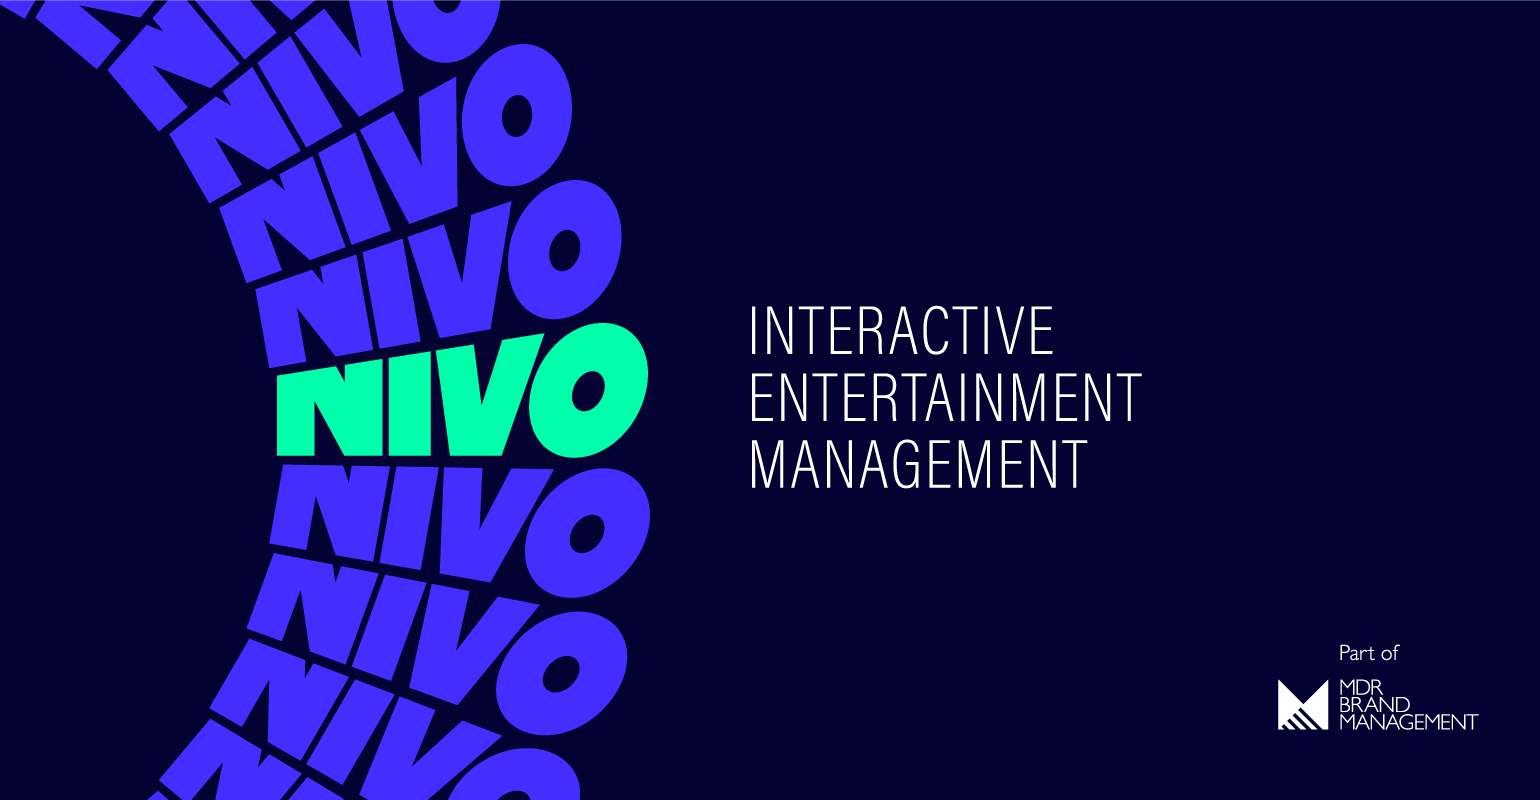 MDR Brand Management launches NIVO to represent pro gamers